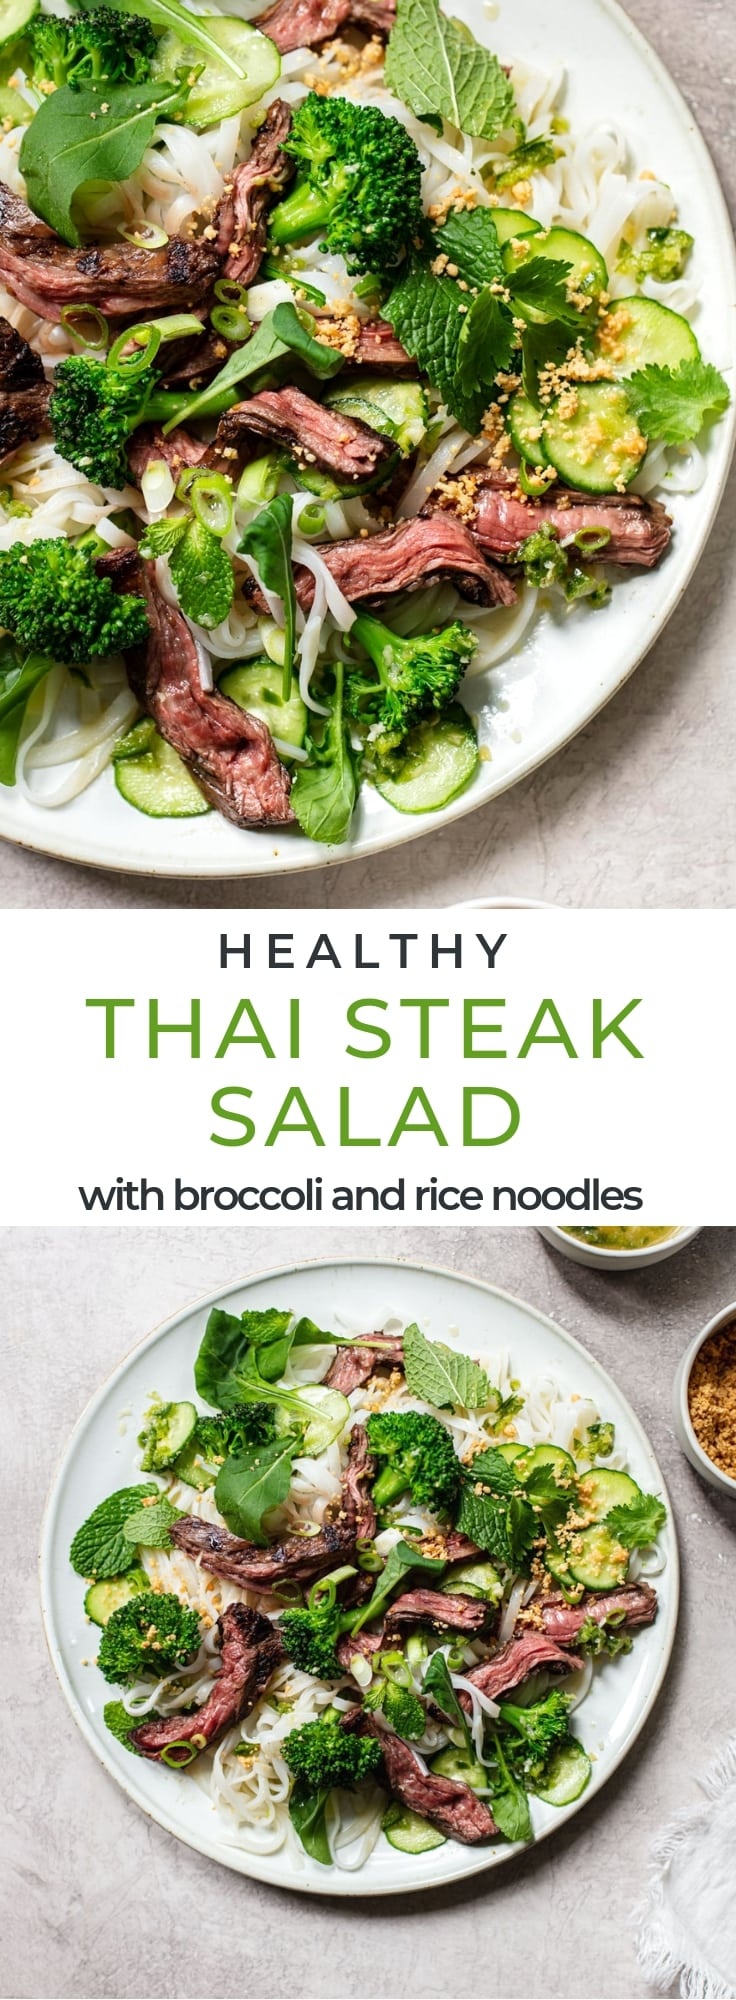 Healthy Thai Steak Salad with Rice Noodles, Broccoli and Herb Salad. #healthy #glutenfree #cleaneating